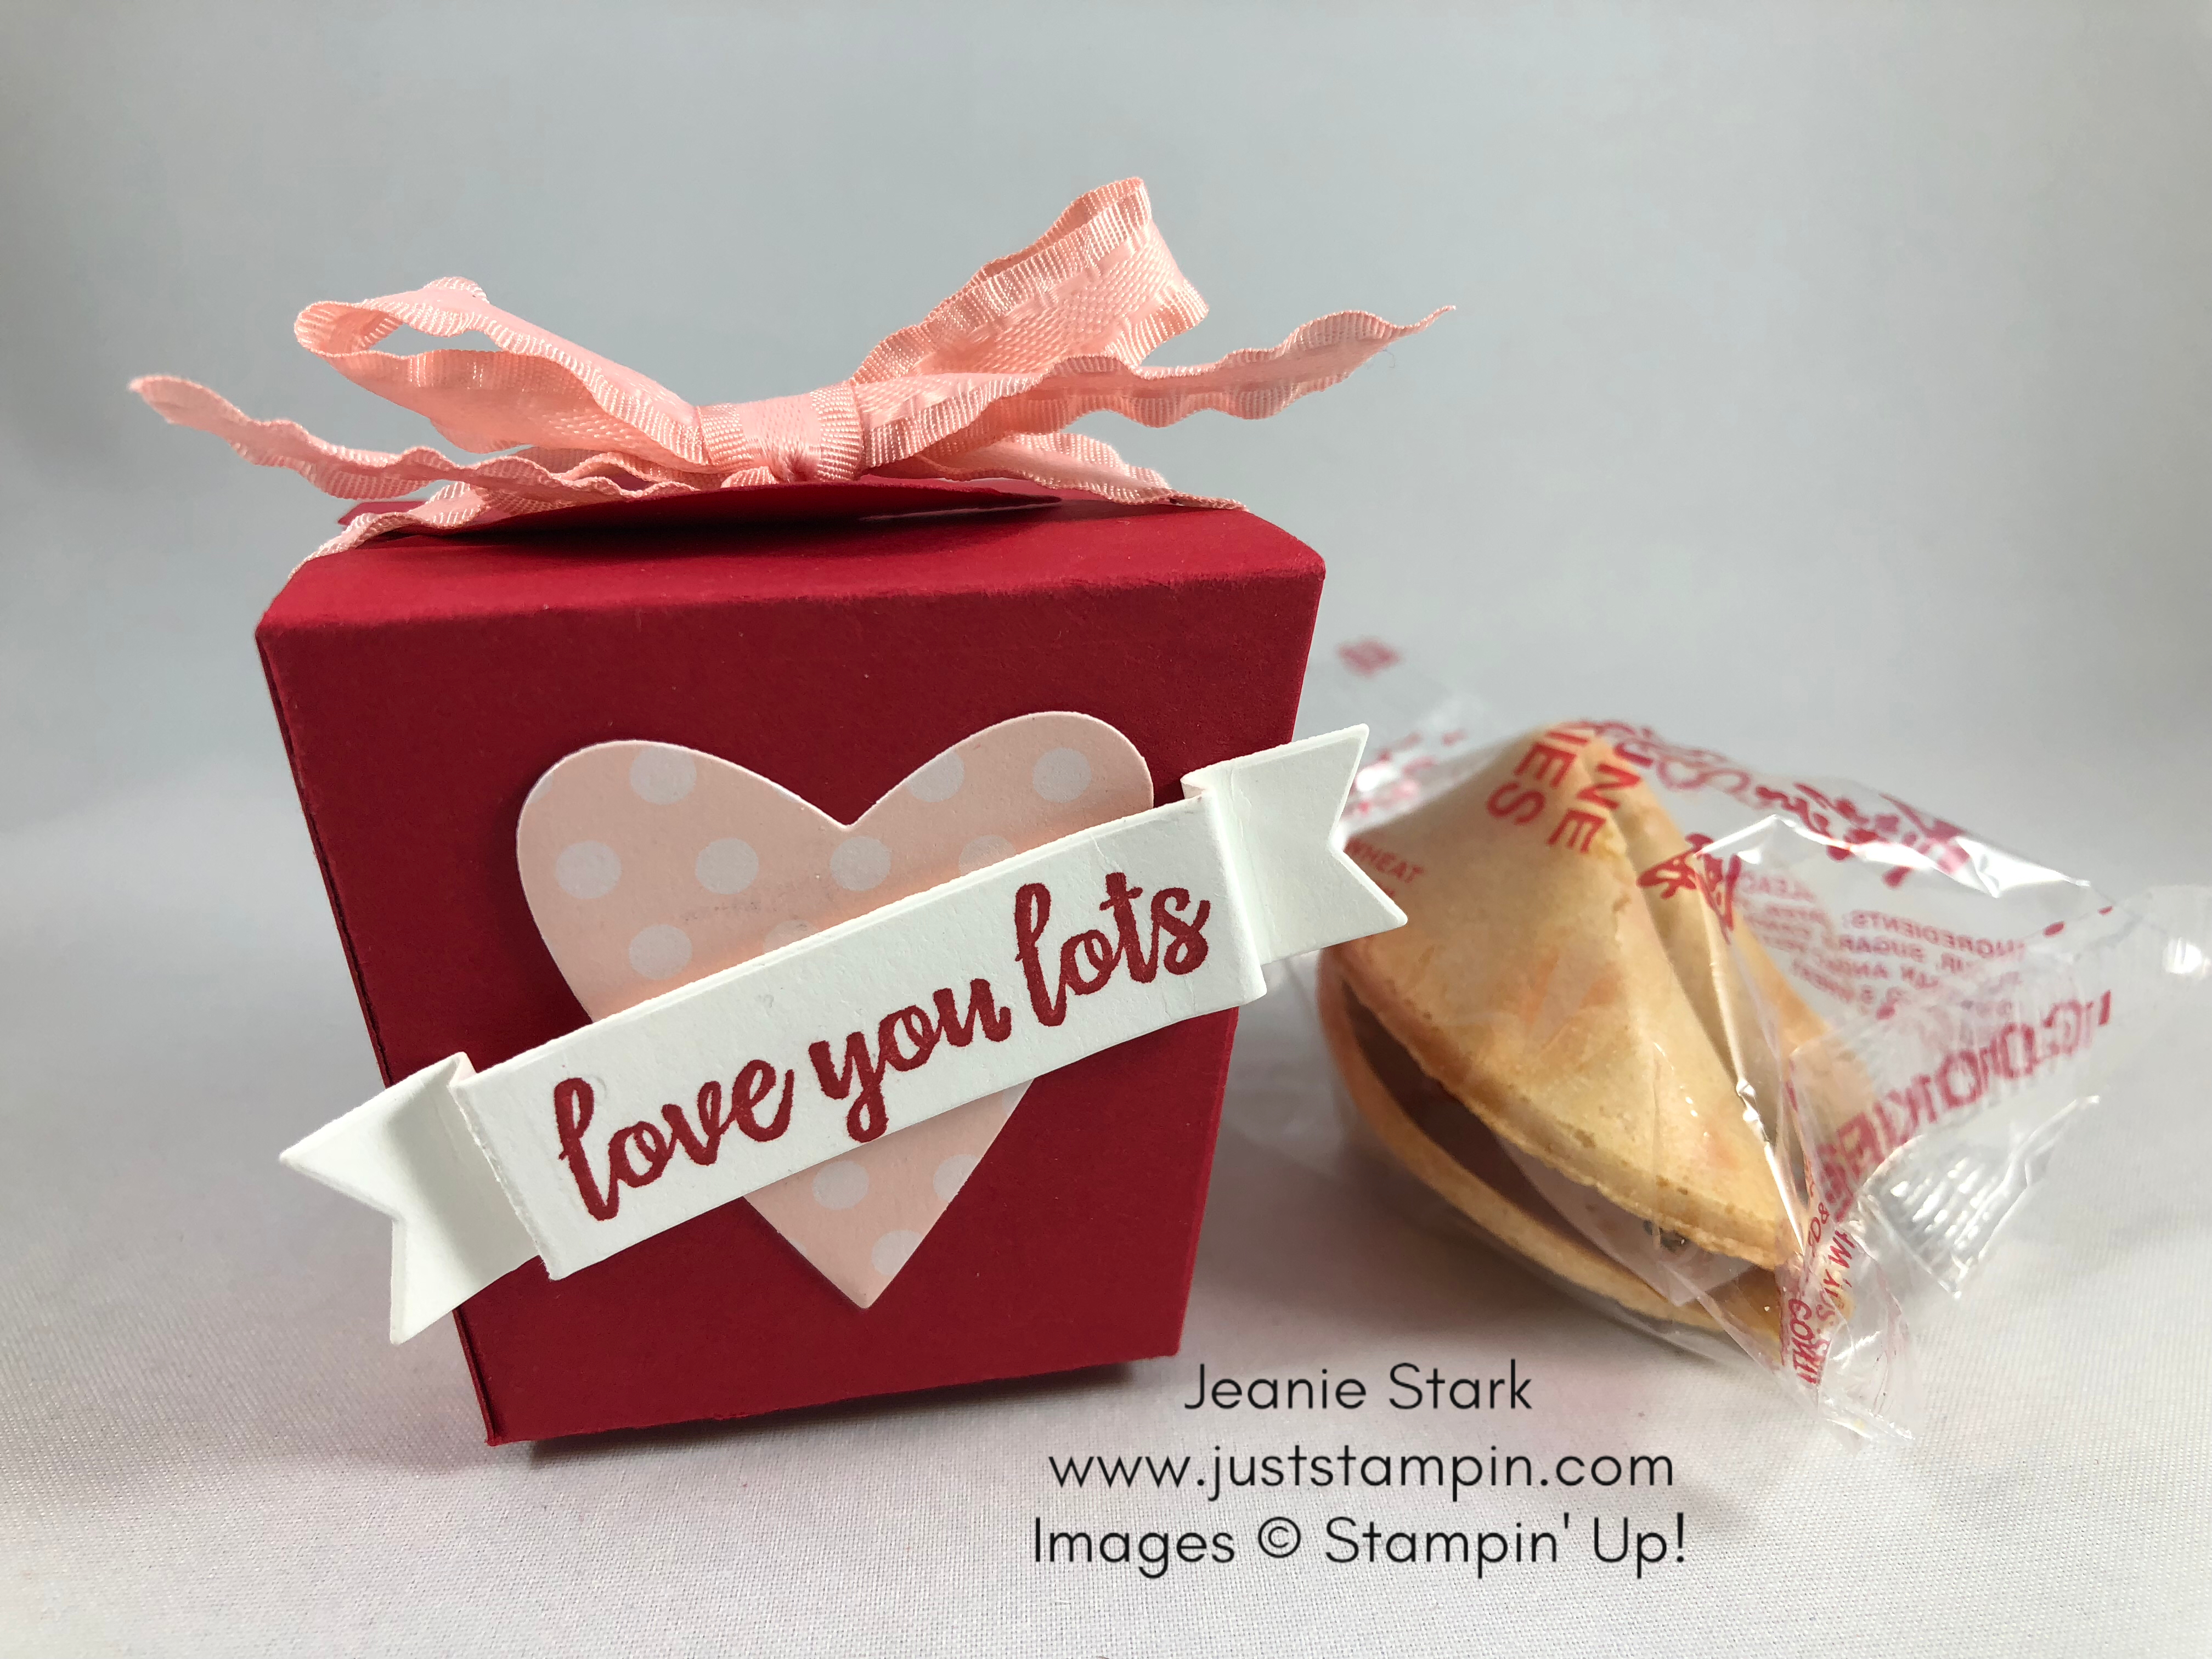 Stampin Up Takeout Treats Valentine or Anniversary favor - Jeanie Stark StampinUp